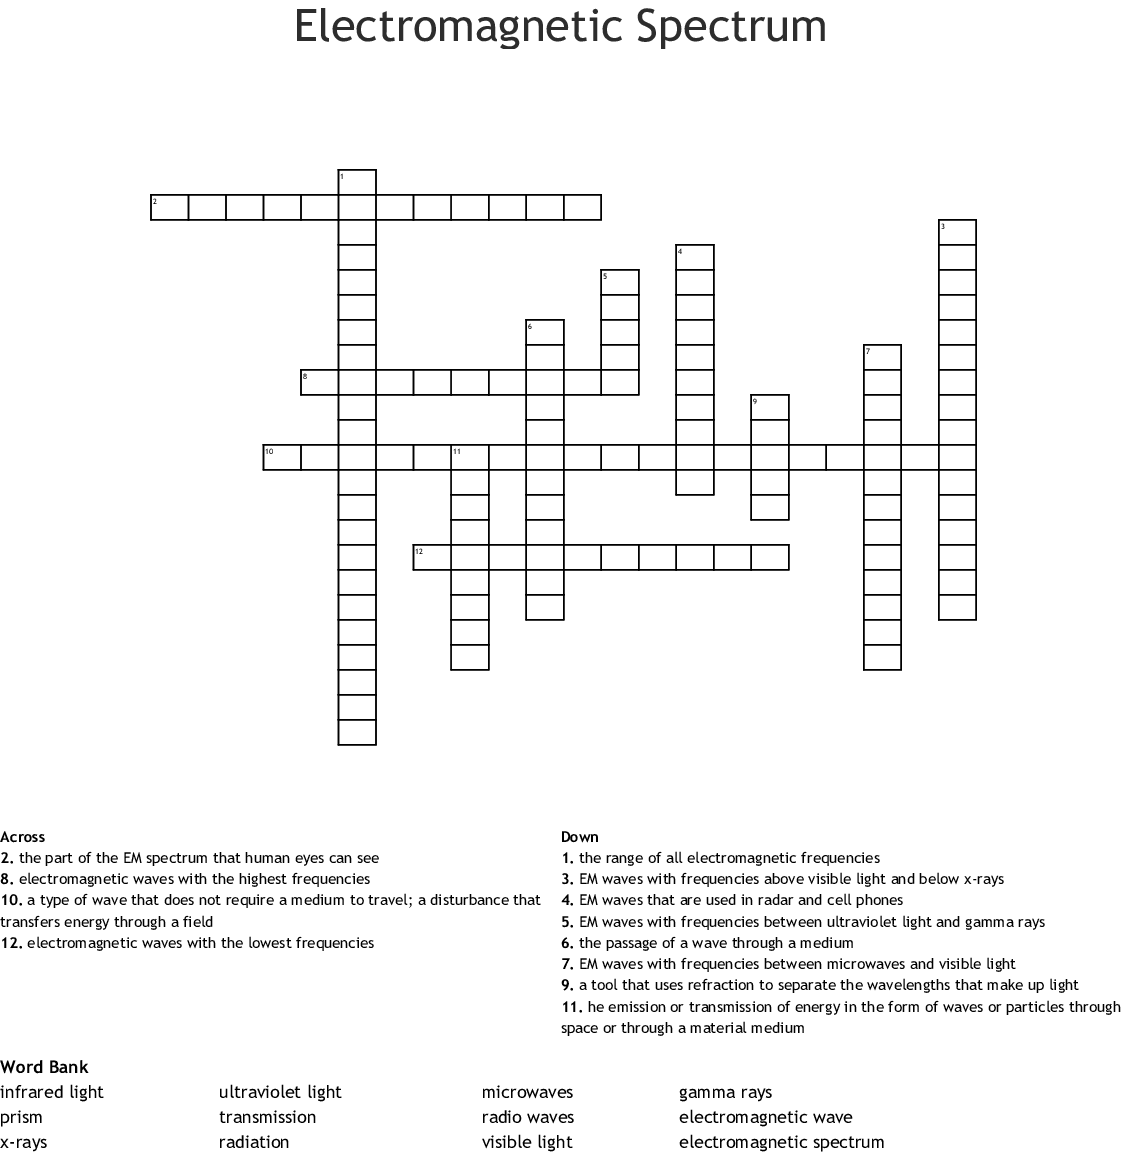 Waves, Sound, and Light Crossword - WordMint